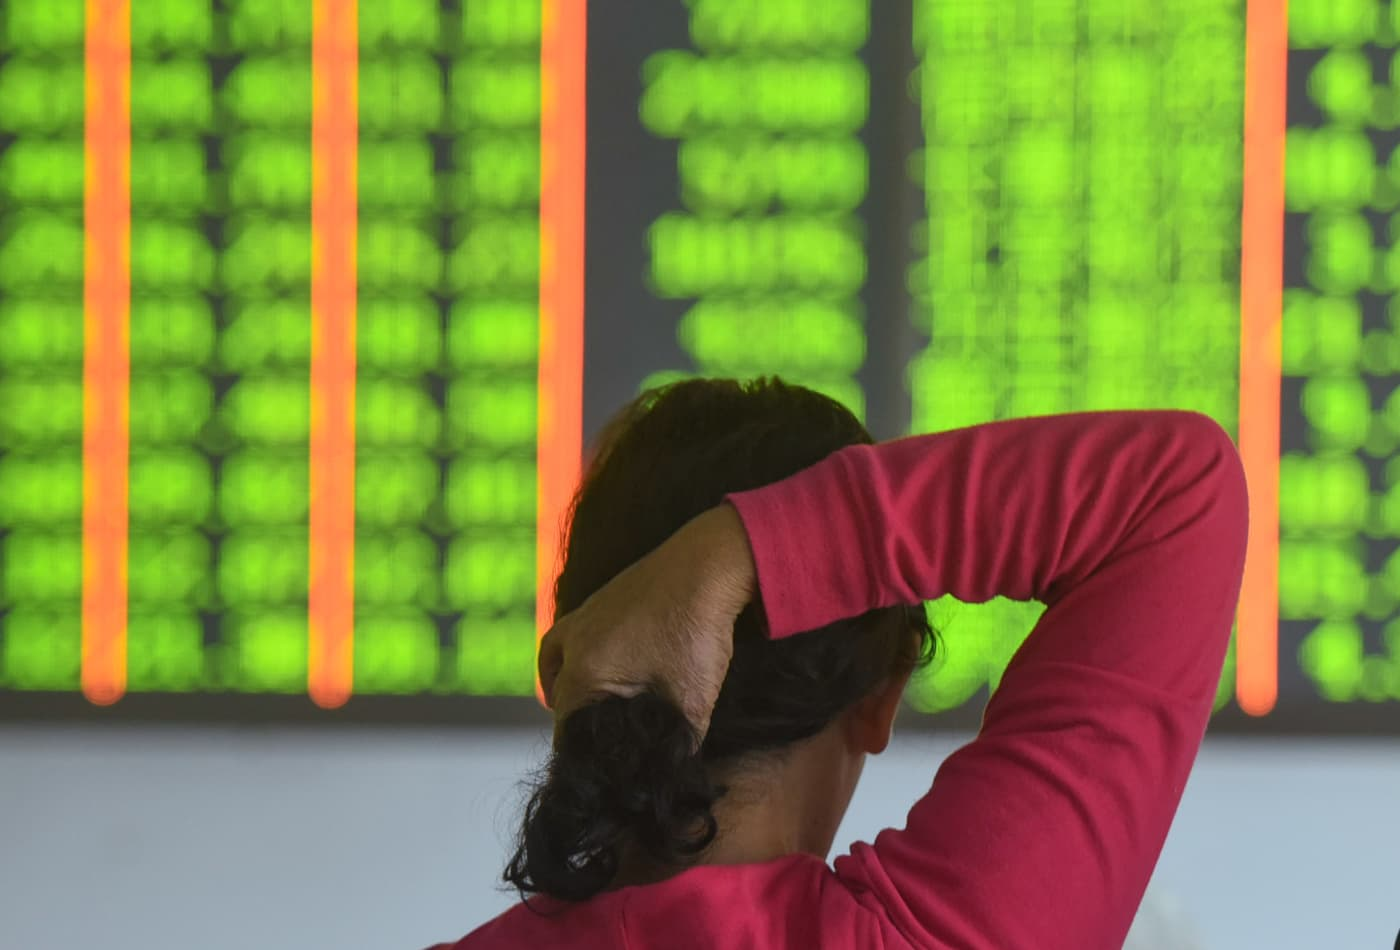 Mainland Chinese stocks drop as much as 3.5% as coronavirus fears grip investors